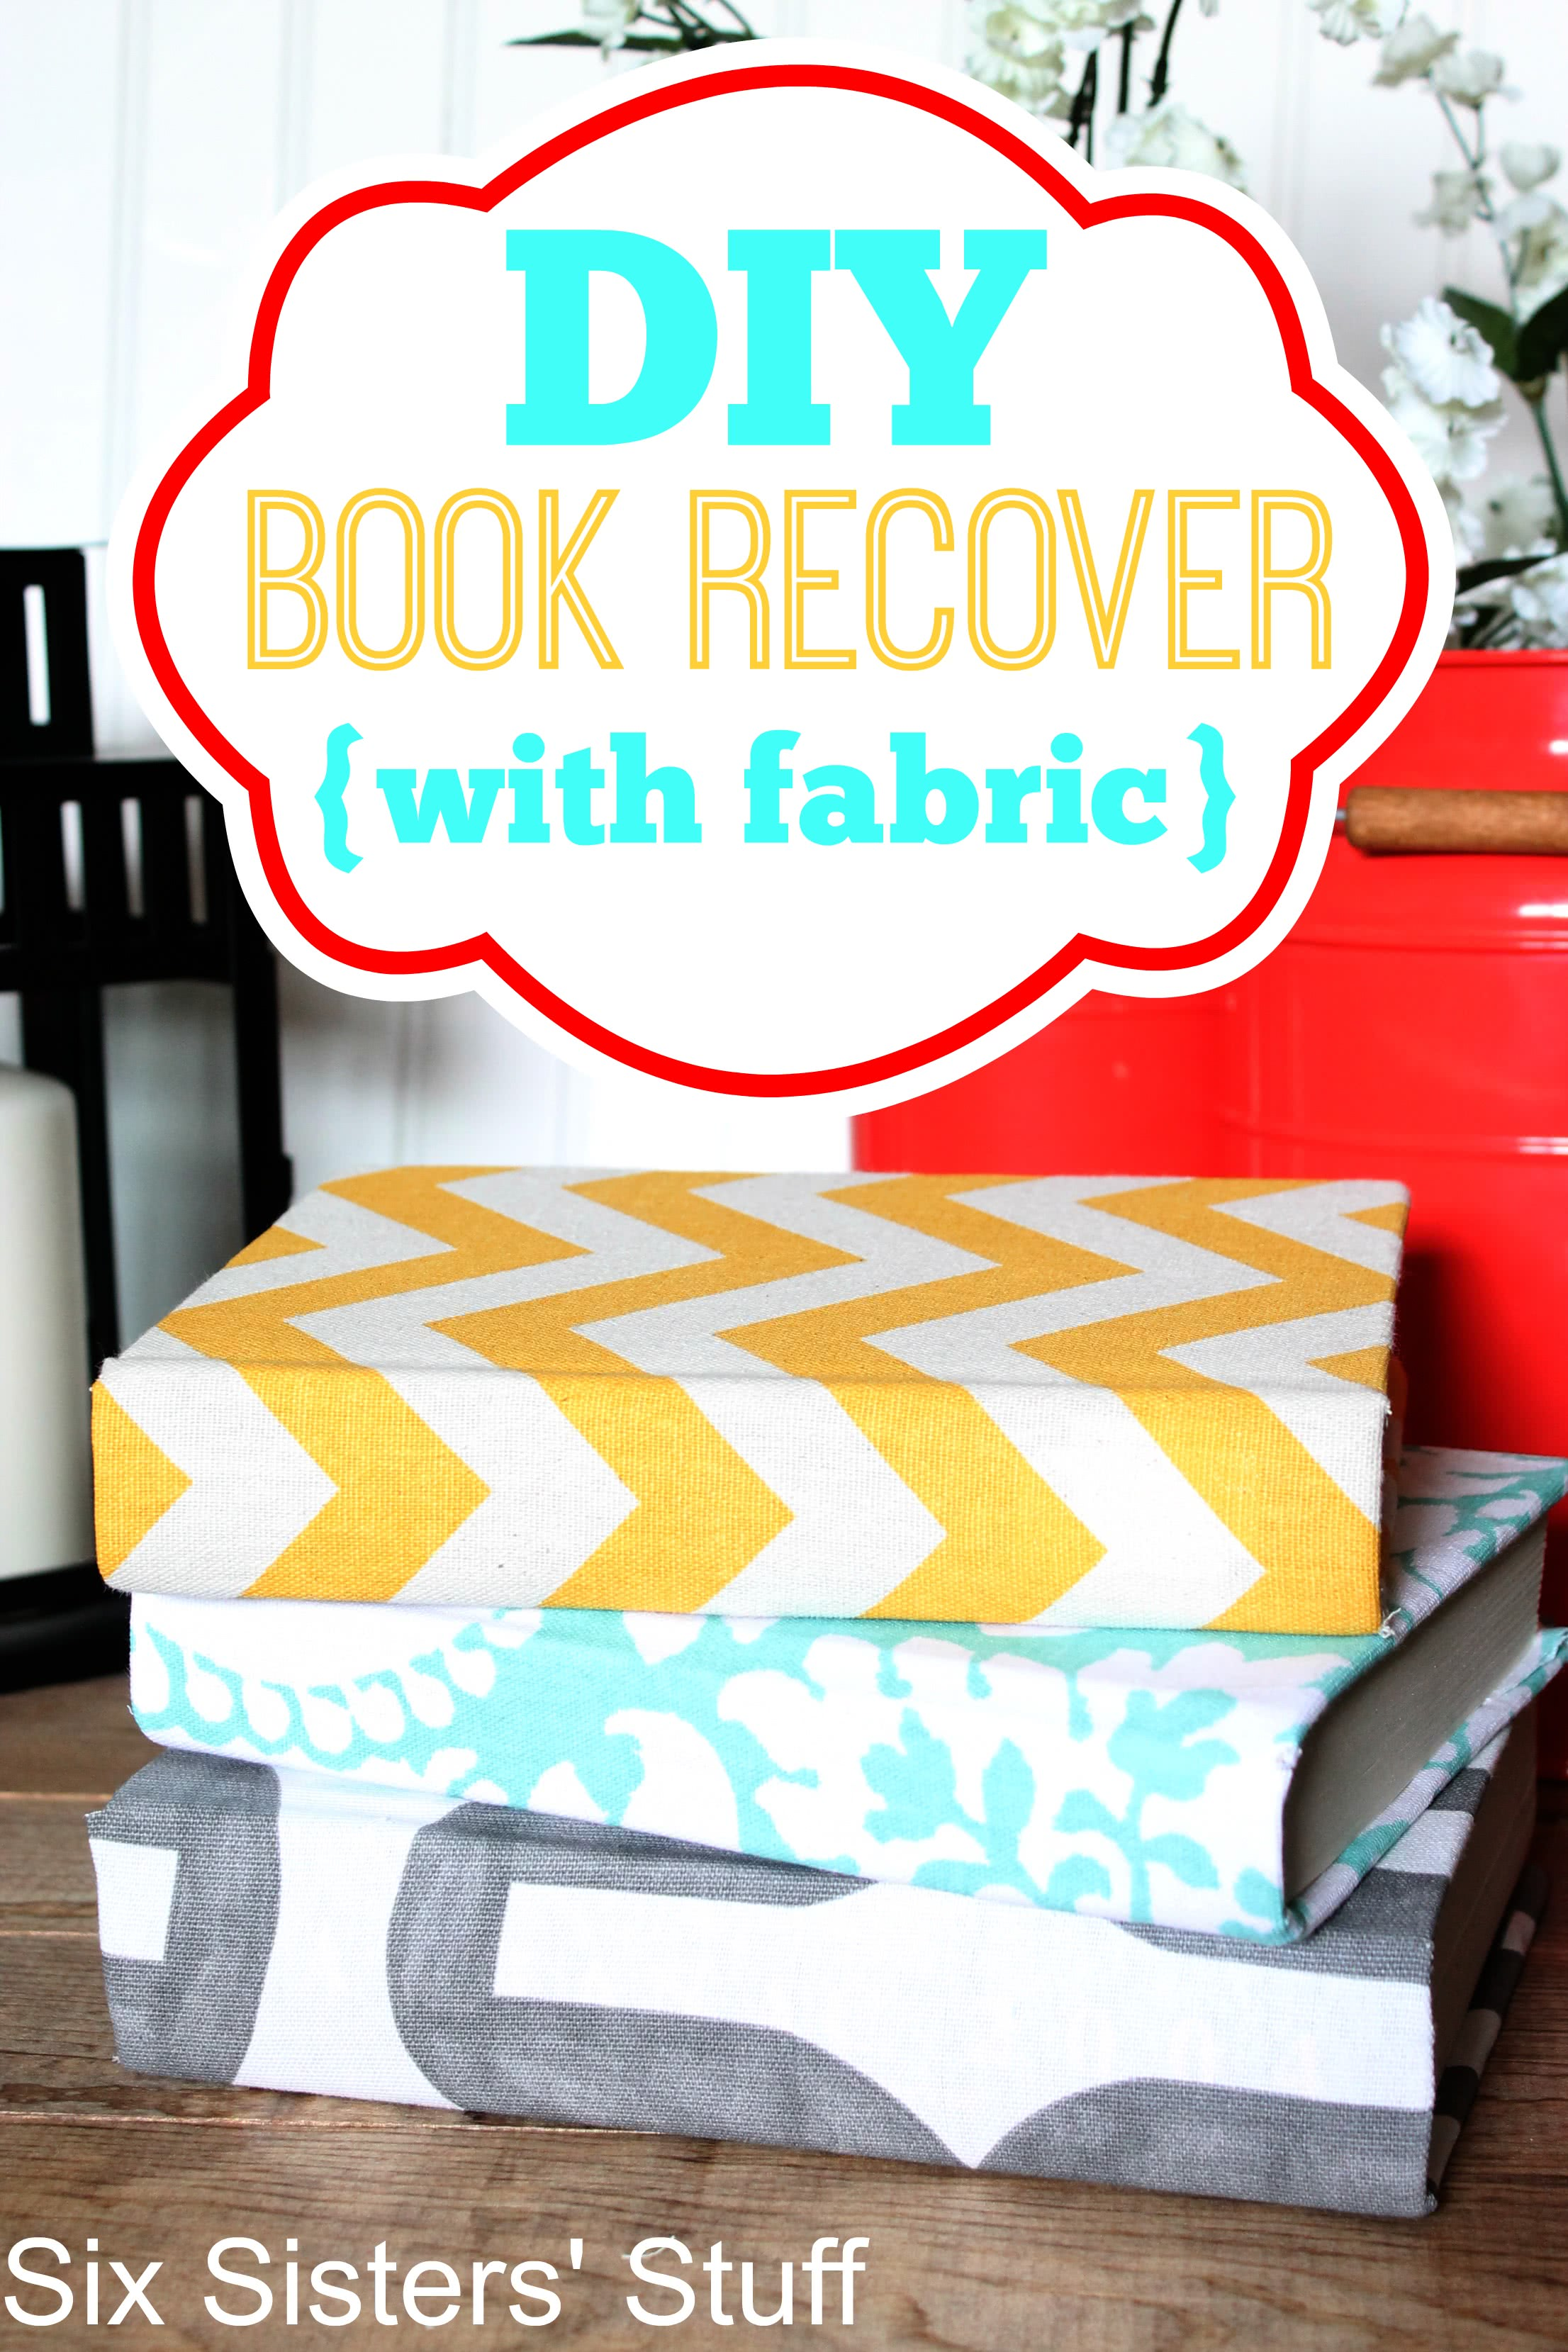 DIY-Book-recover-with-fabric-title